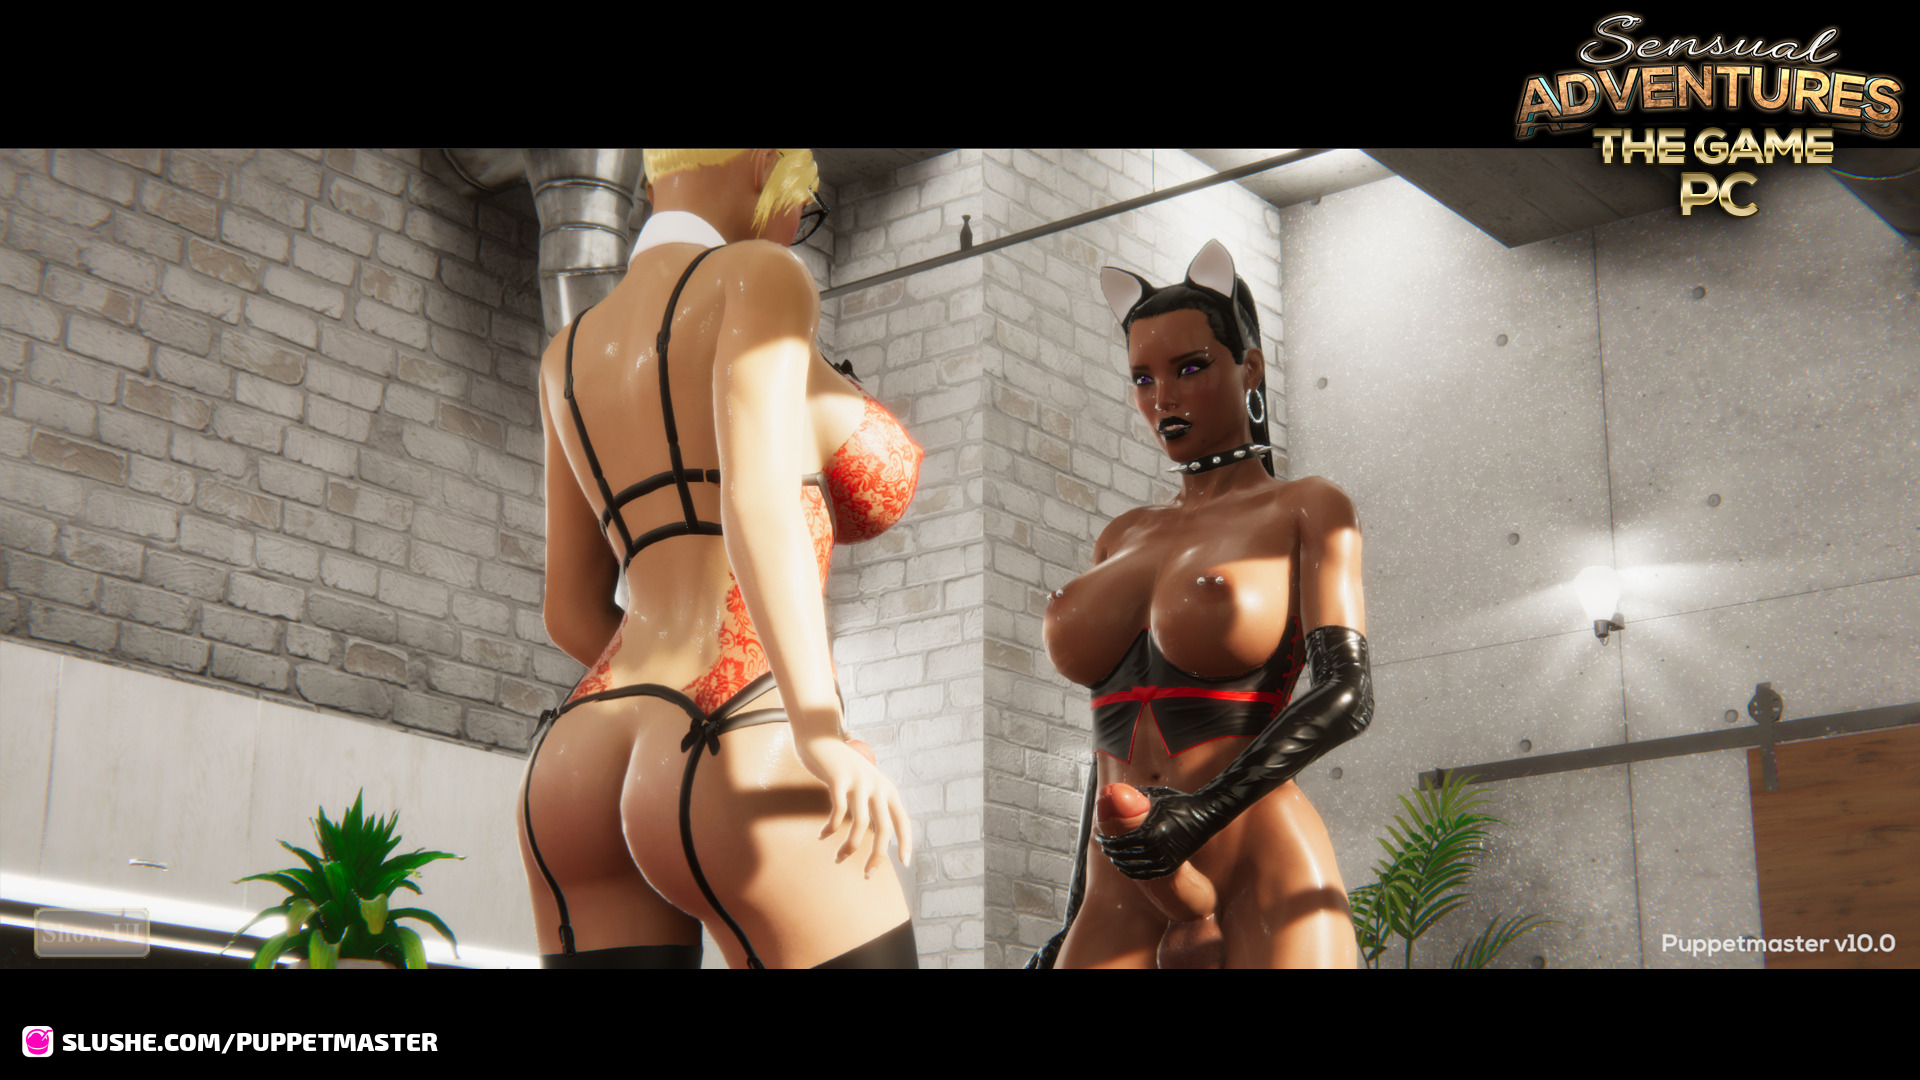 """First Screenshots of """"Sensual Adventures - The Game PC"""""""